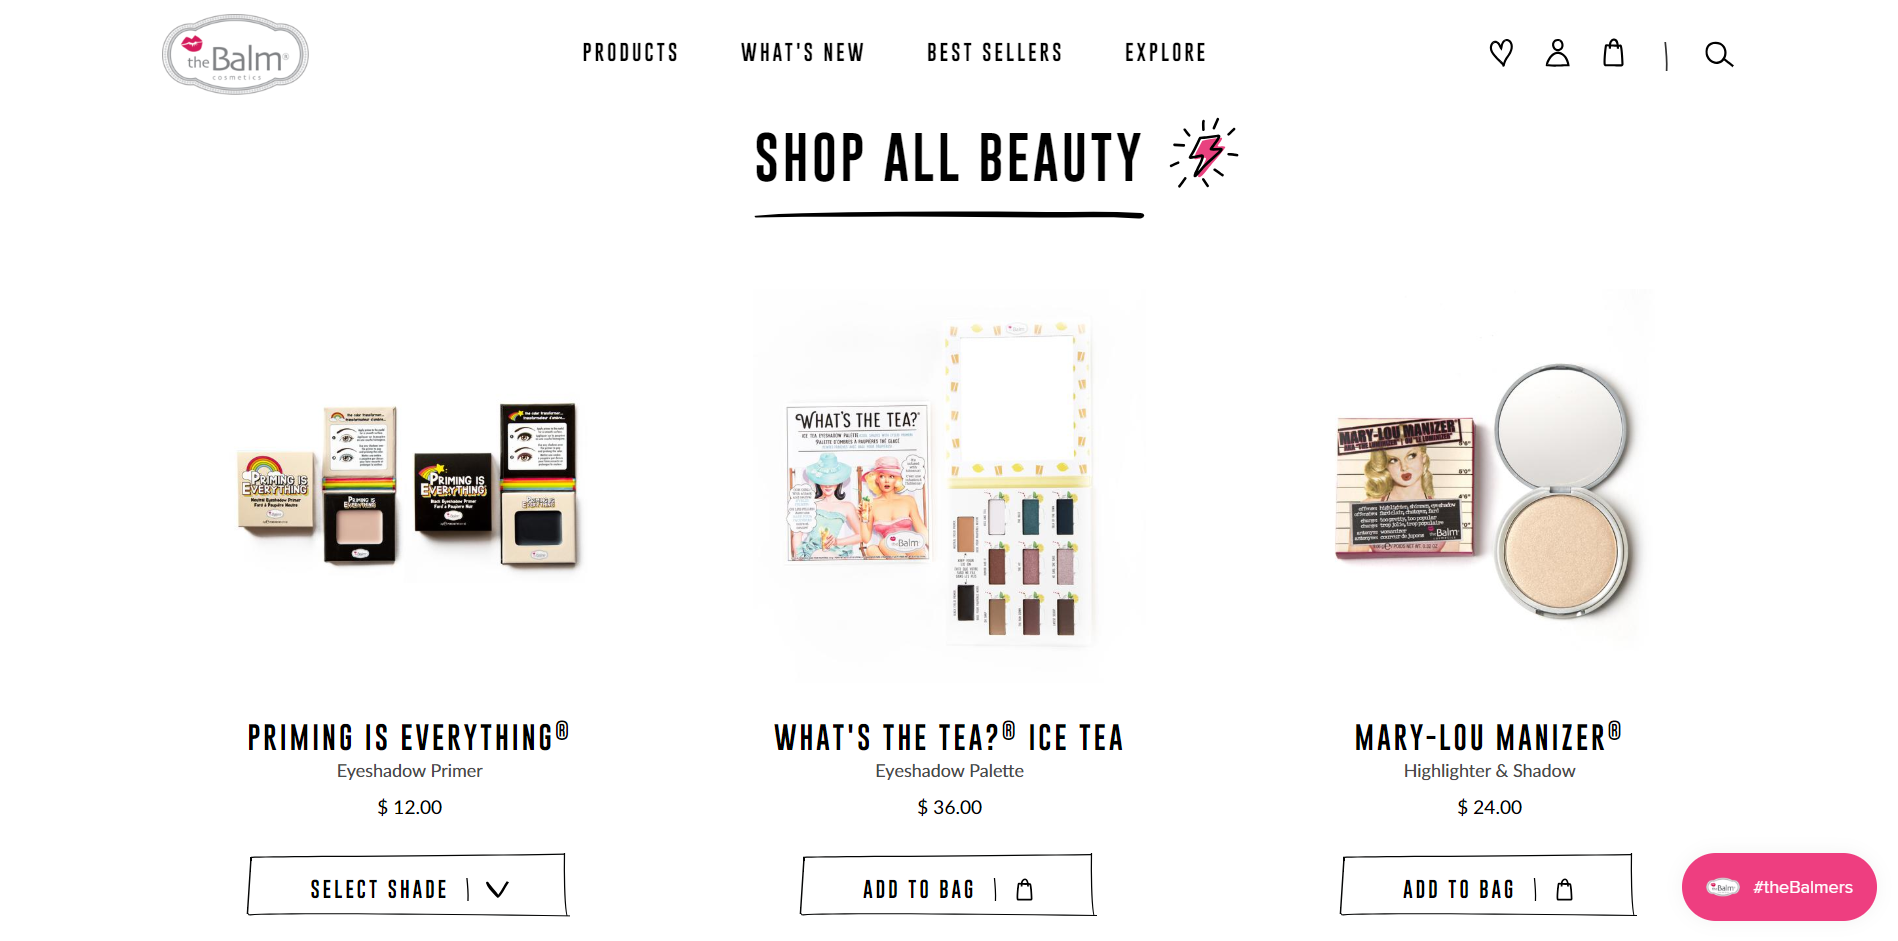 Example of the collection page at The Balm